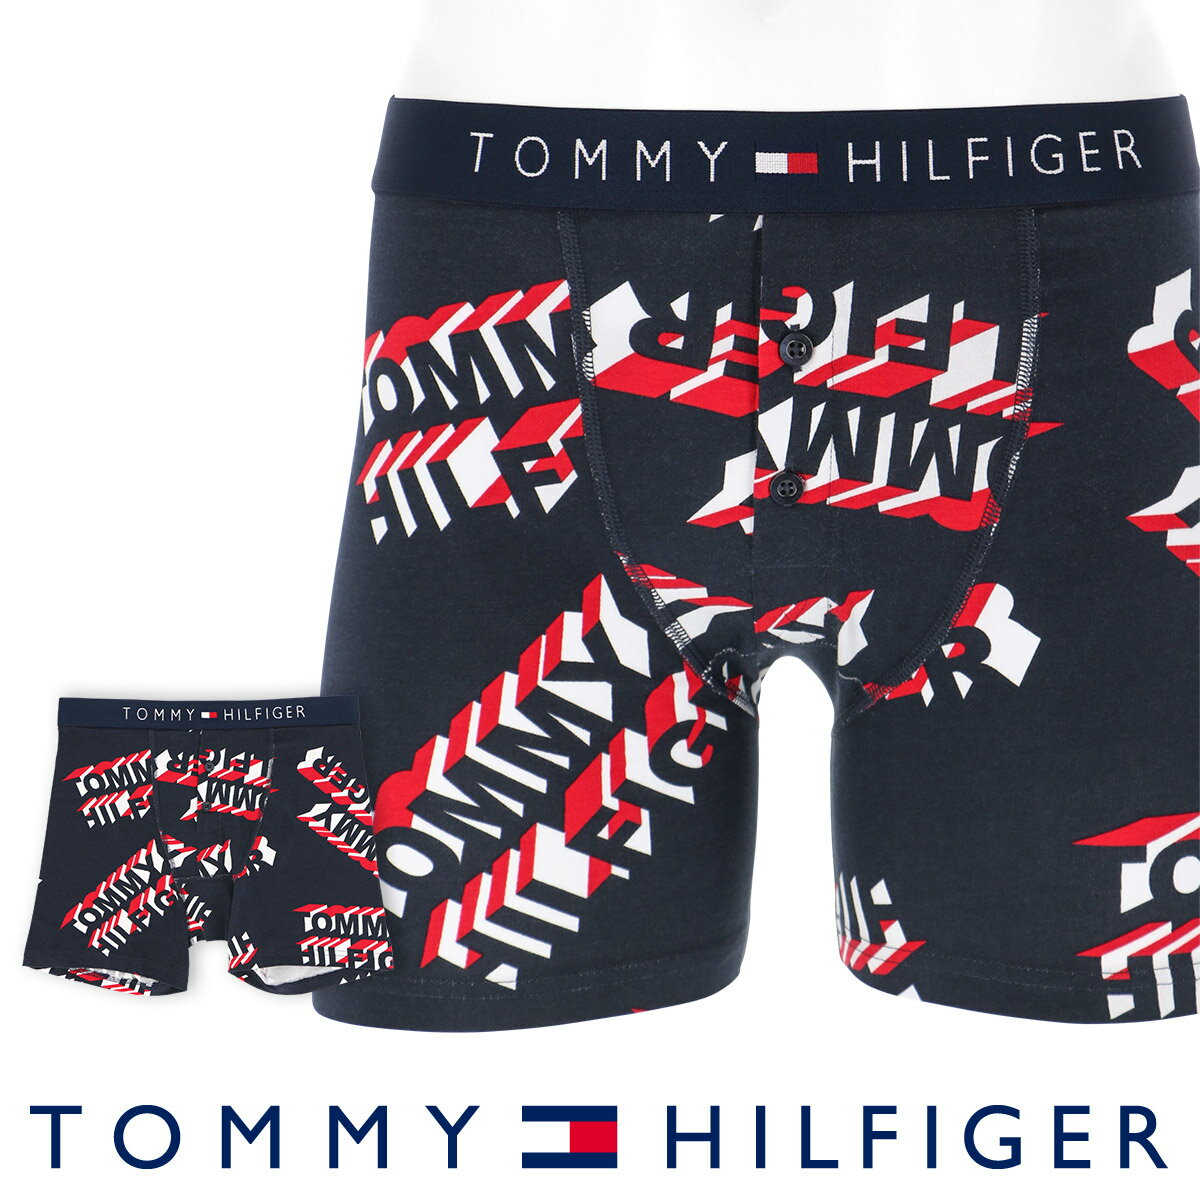 TOMMY HILFIGER|トミーヒルフィガーJAPAN LIMITED 日本限定COTTON ICON BUTTON FLY BOXER BRIEF 3D LOGO コットン アイコン 3D ロゴ ボクサーパンツ5338-1052男性 メンズ プレゼント 贈答 ギフトポイント10倍